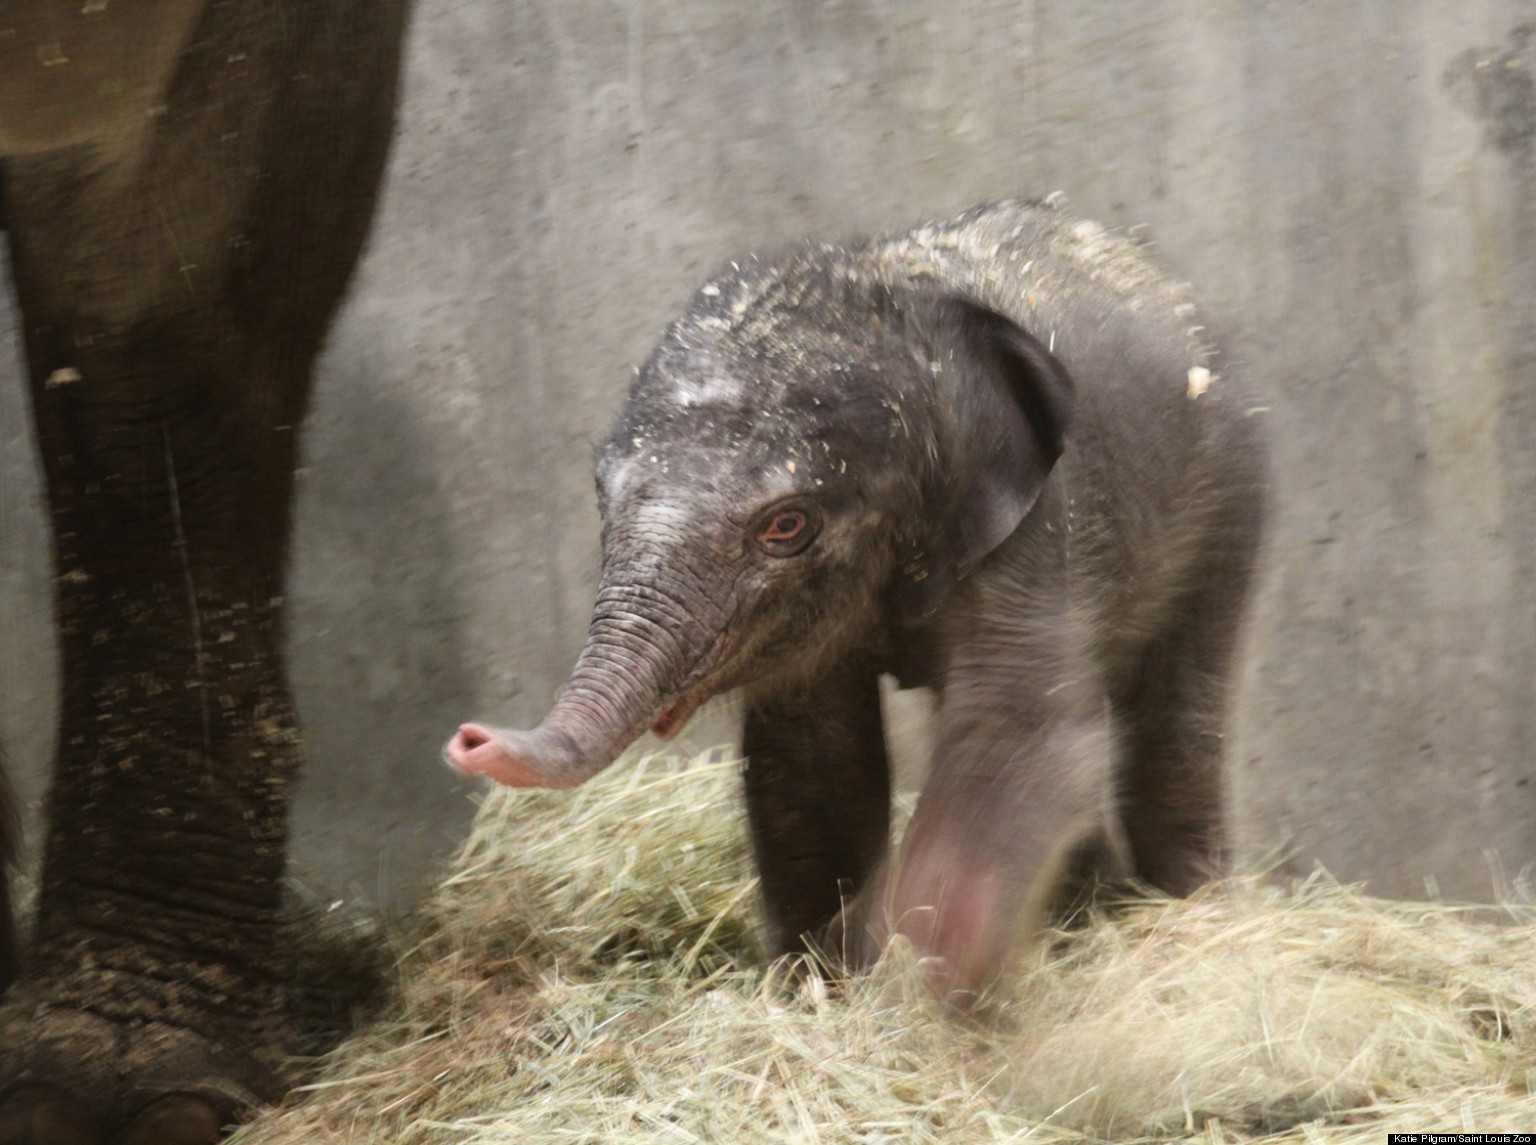 Elephant newborn baby - photo#26